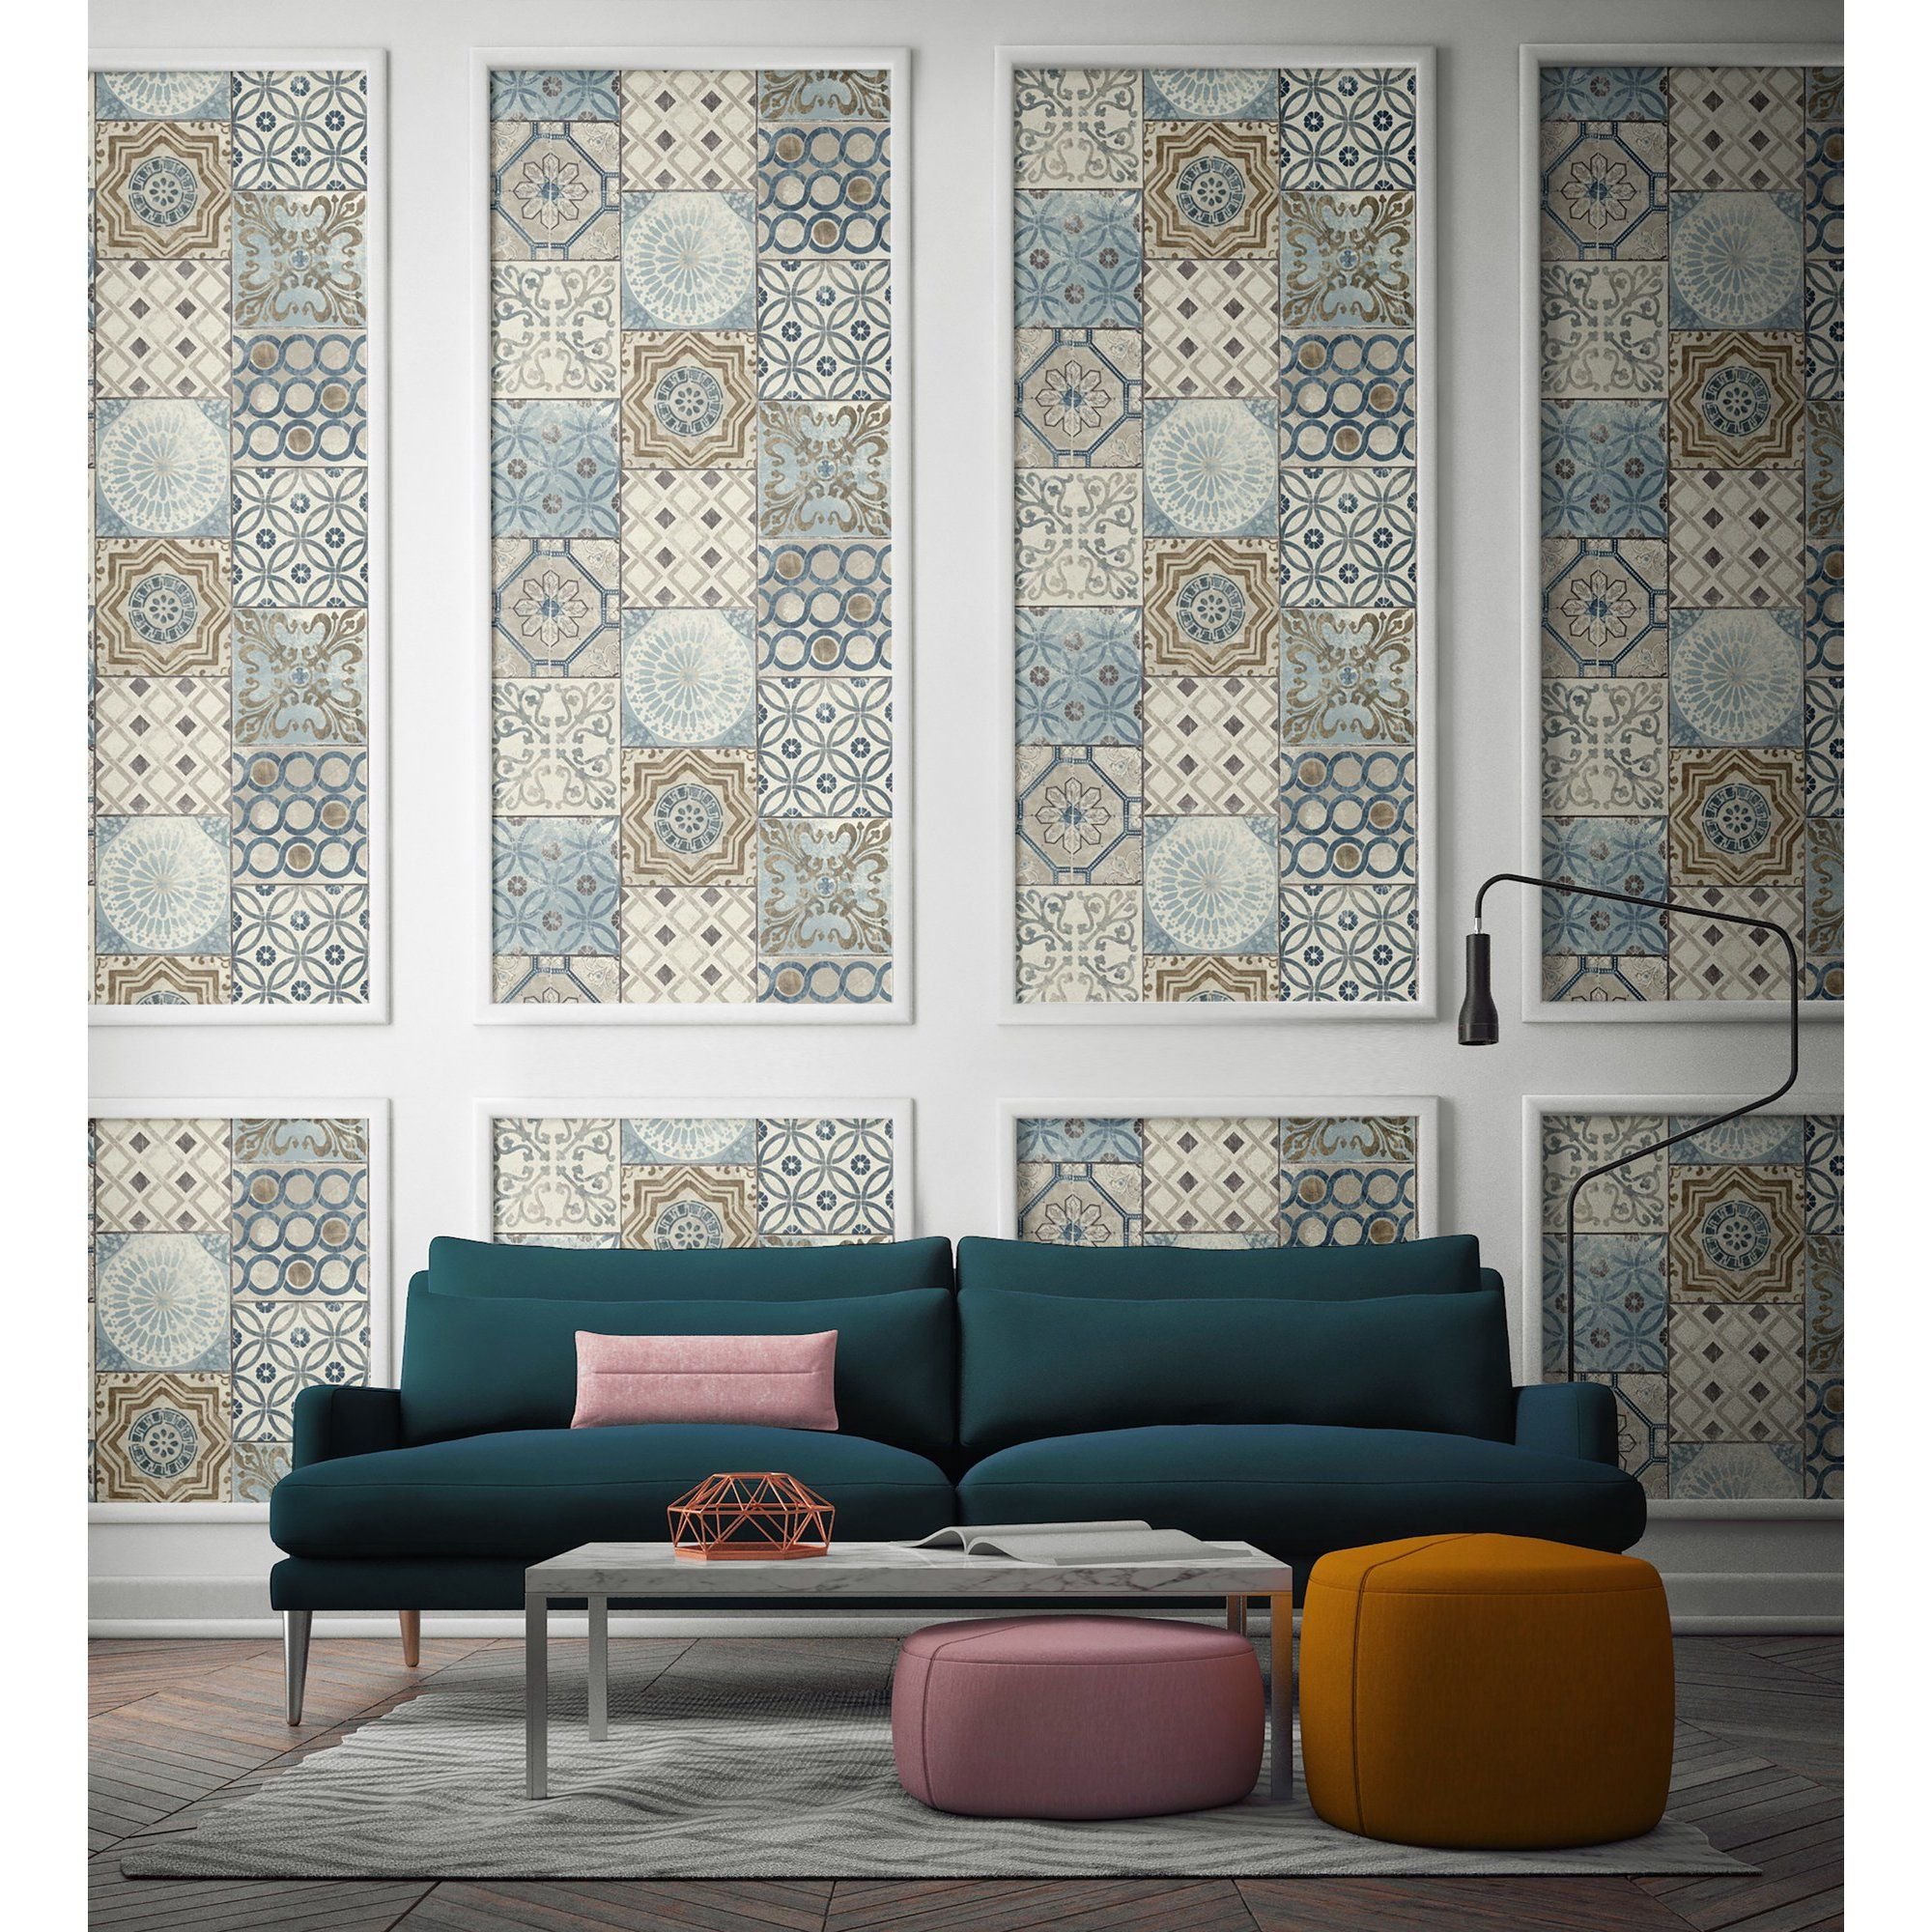 Nextwall Moroccan Style Peel And Stick Nw30002 Mosaic Tile Wallpaper Blue Copper Grey Walmart Com Home Decor Decor Blue Grey Wallpaper